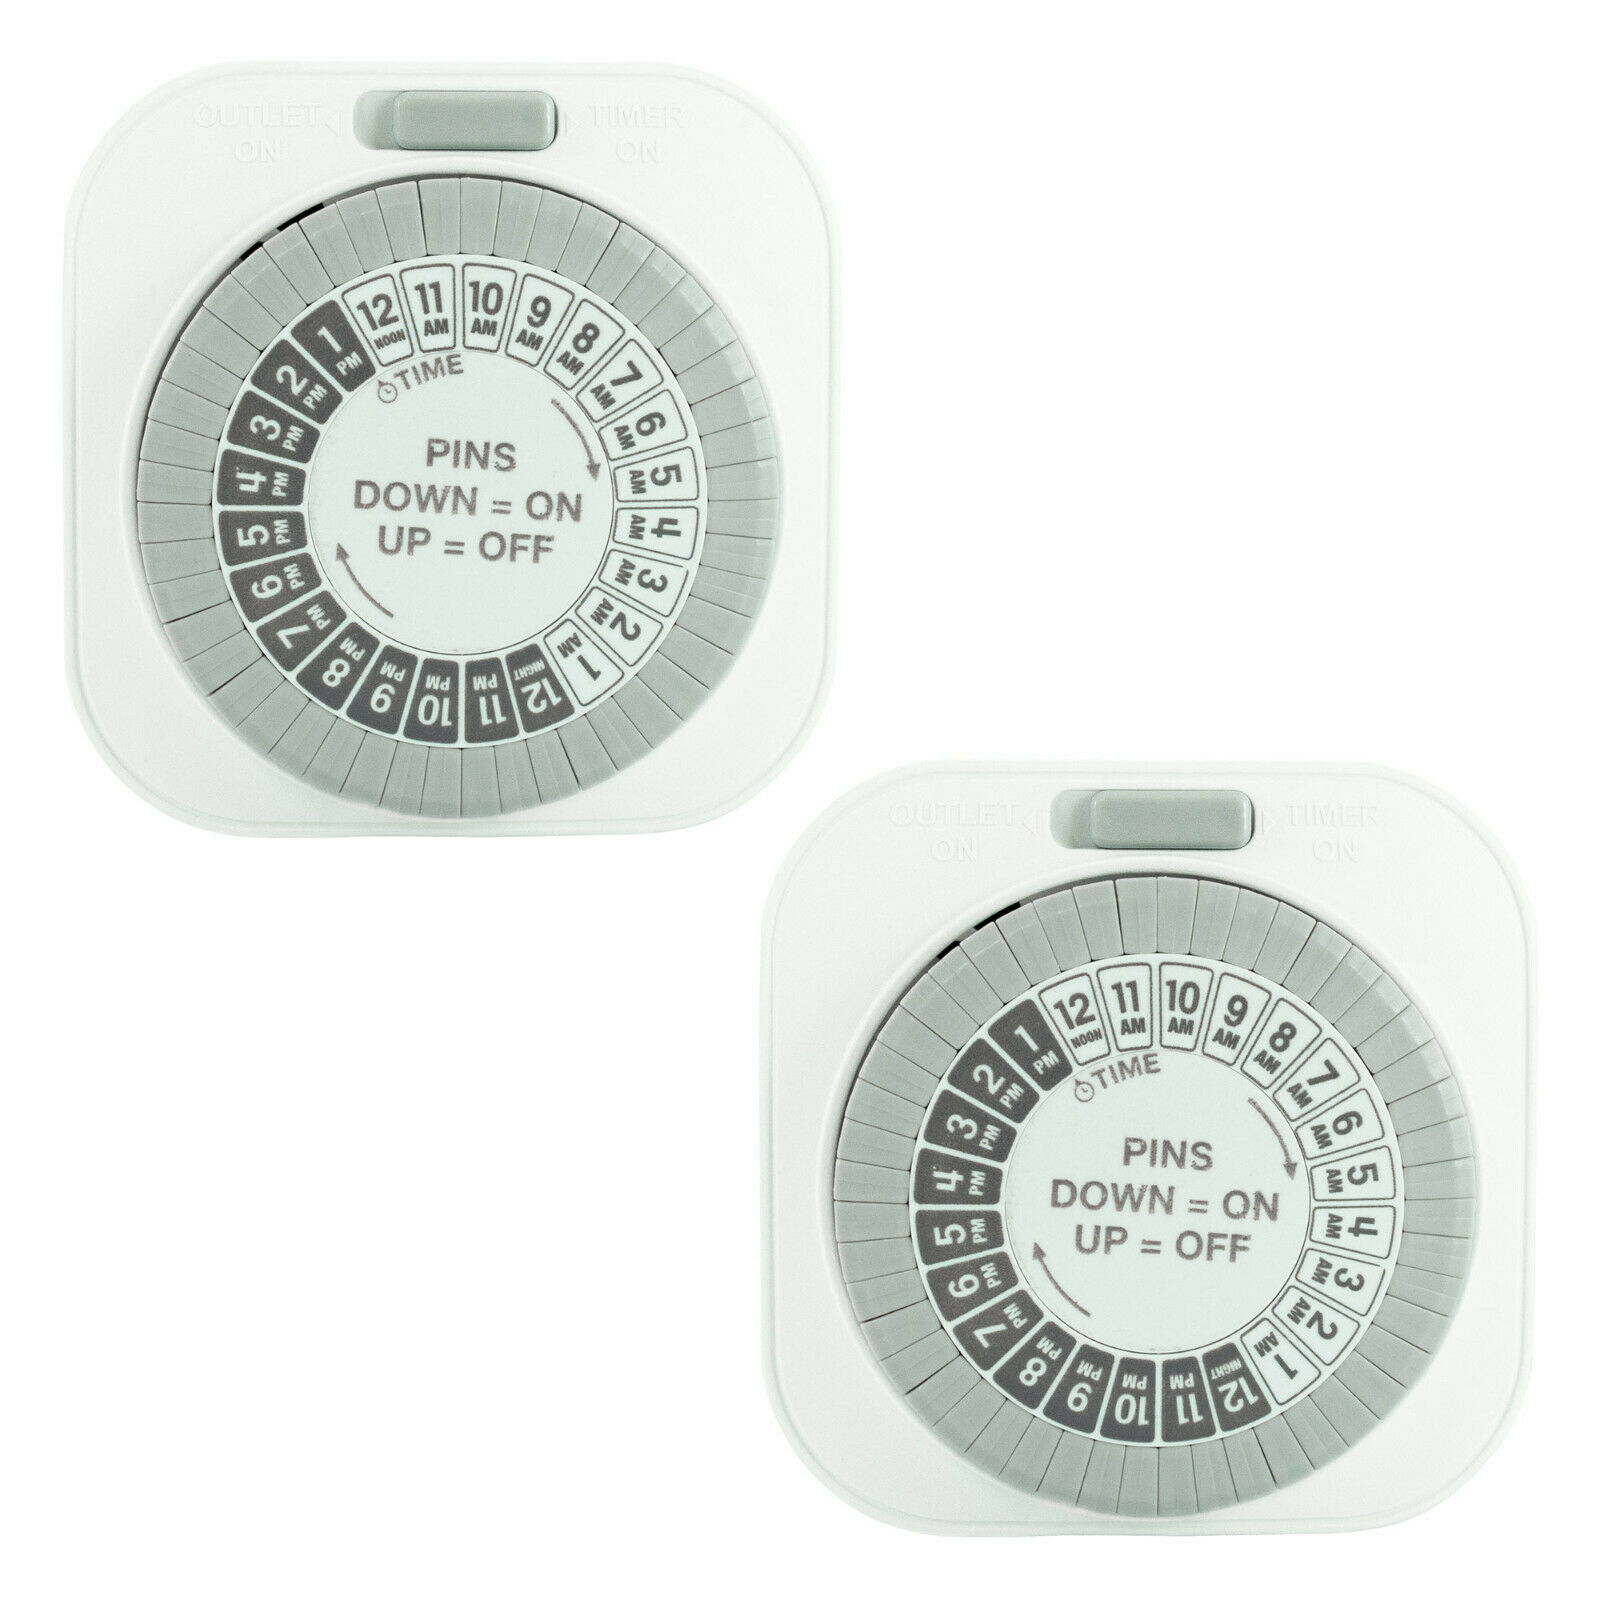 2 Pack of 24 Hour Daily Mechanical Outlet Light Timers, Automatic Hydroponics 15 Electrical Outlets, Switches & Accessories